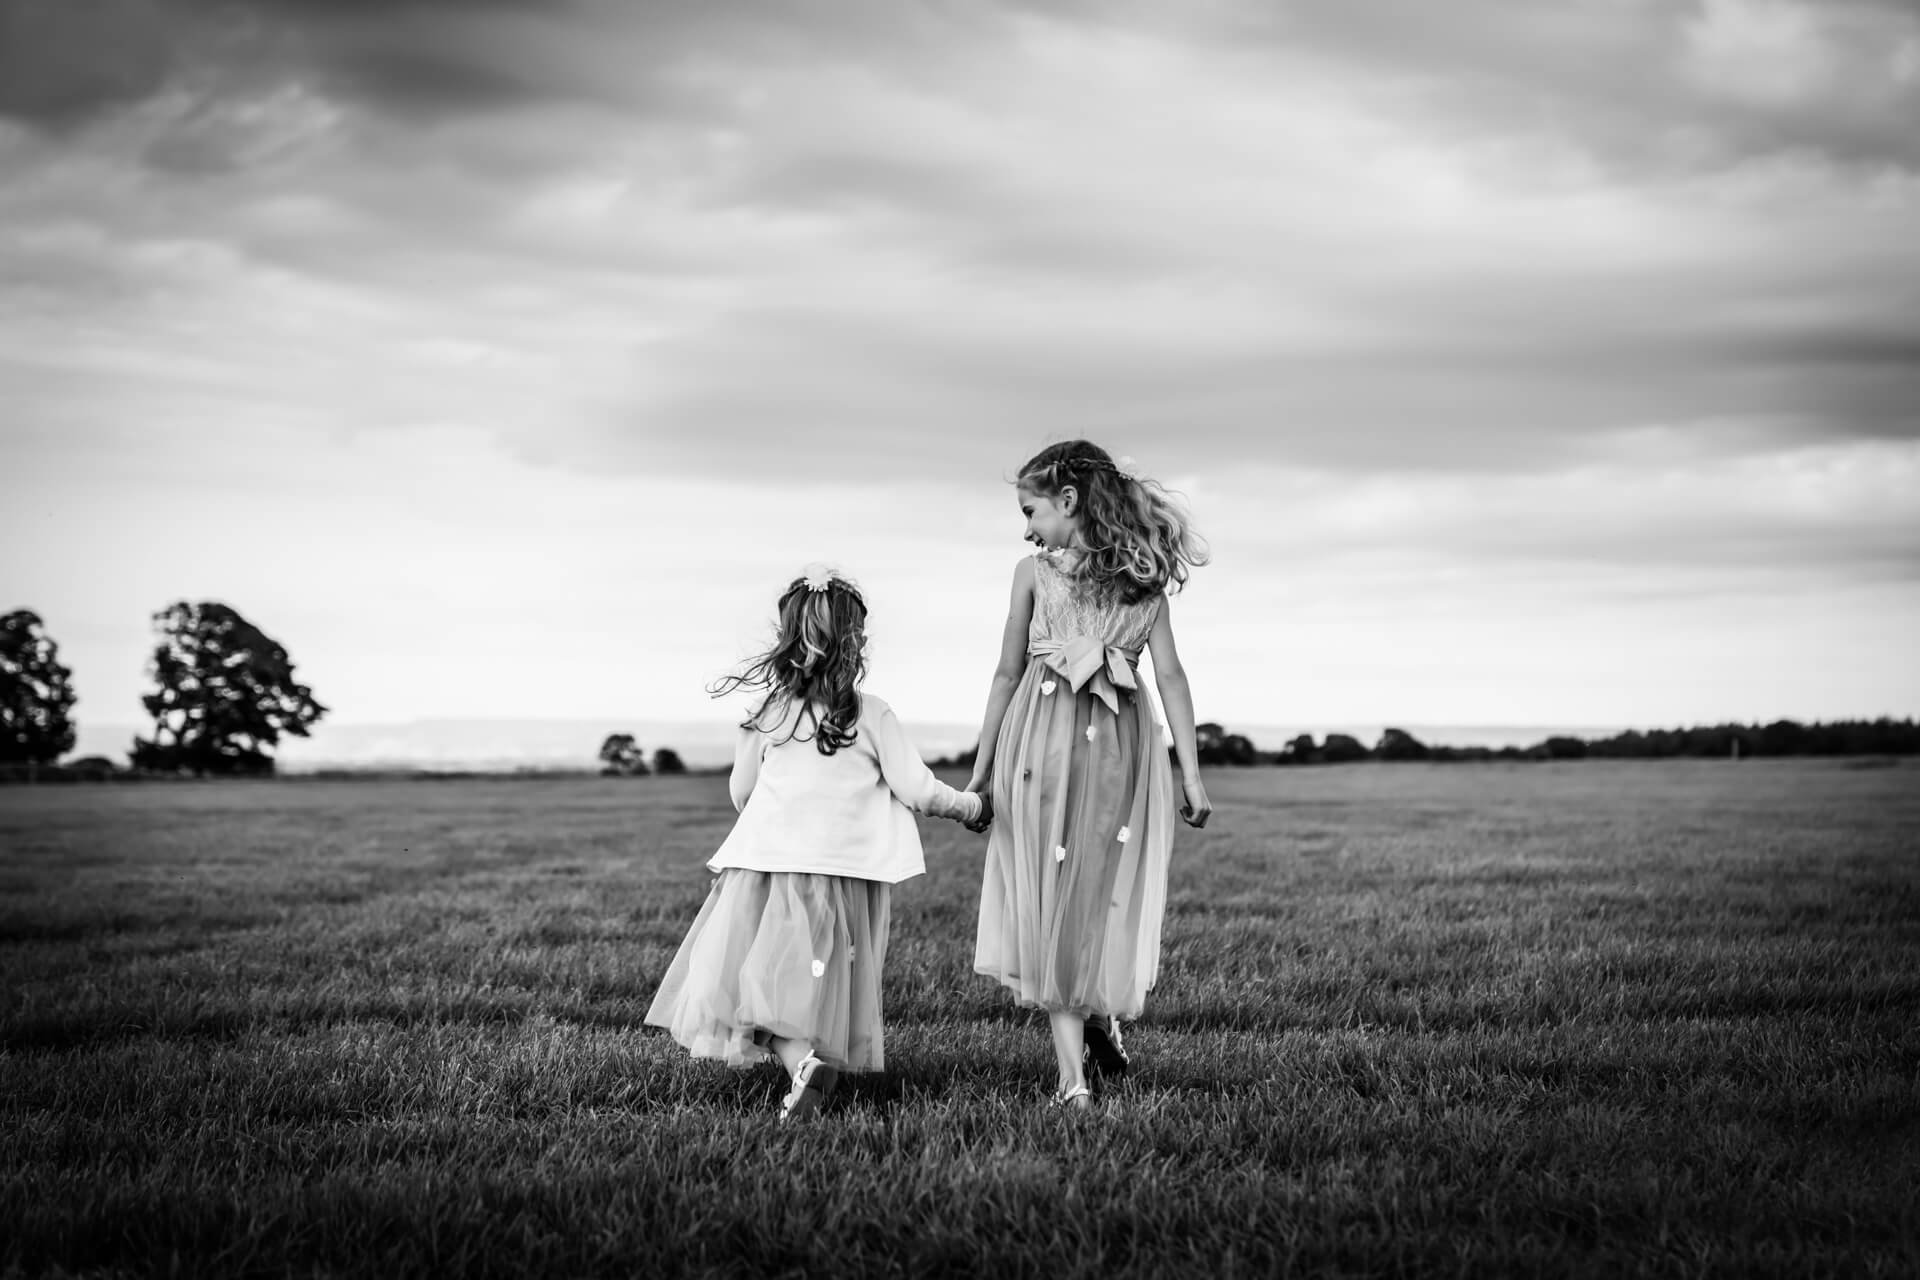 two flower girls walking together in a field